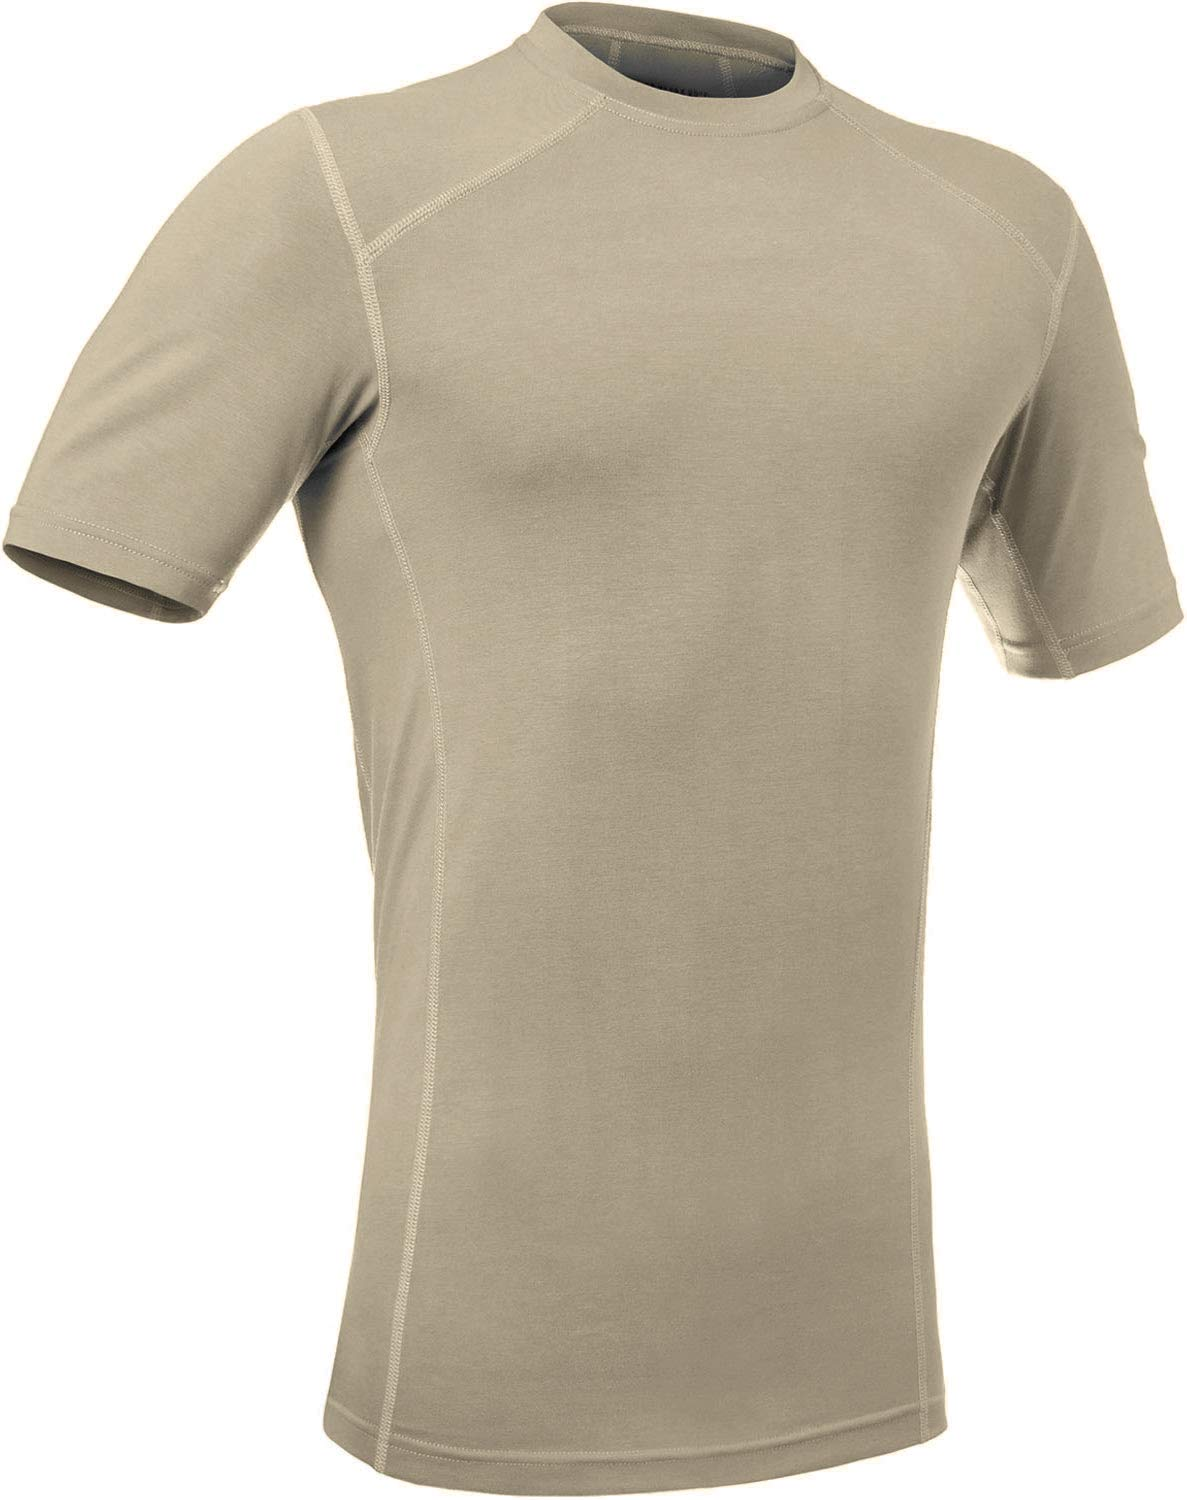 281Z Military Stretch Cotton Underwear T-Shirt - Tactical Hiking Outdoor - Punisher Combat Line (Tan, Small)